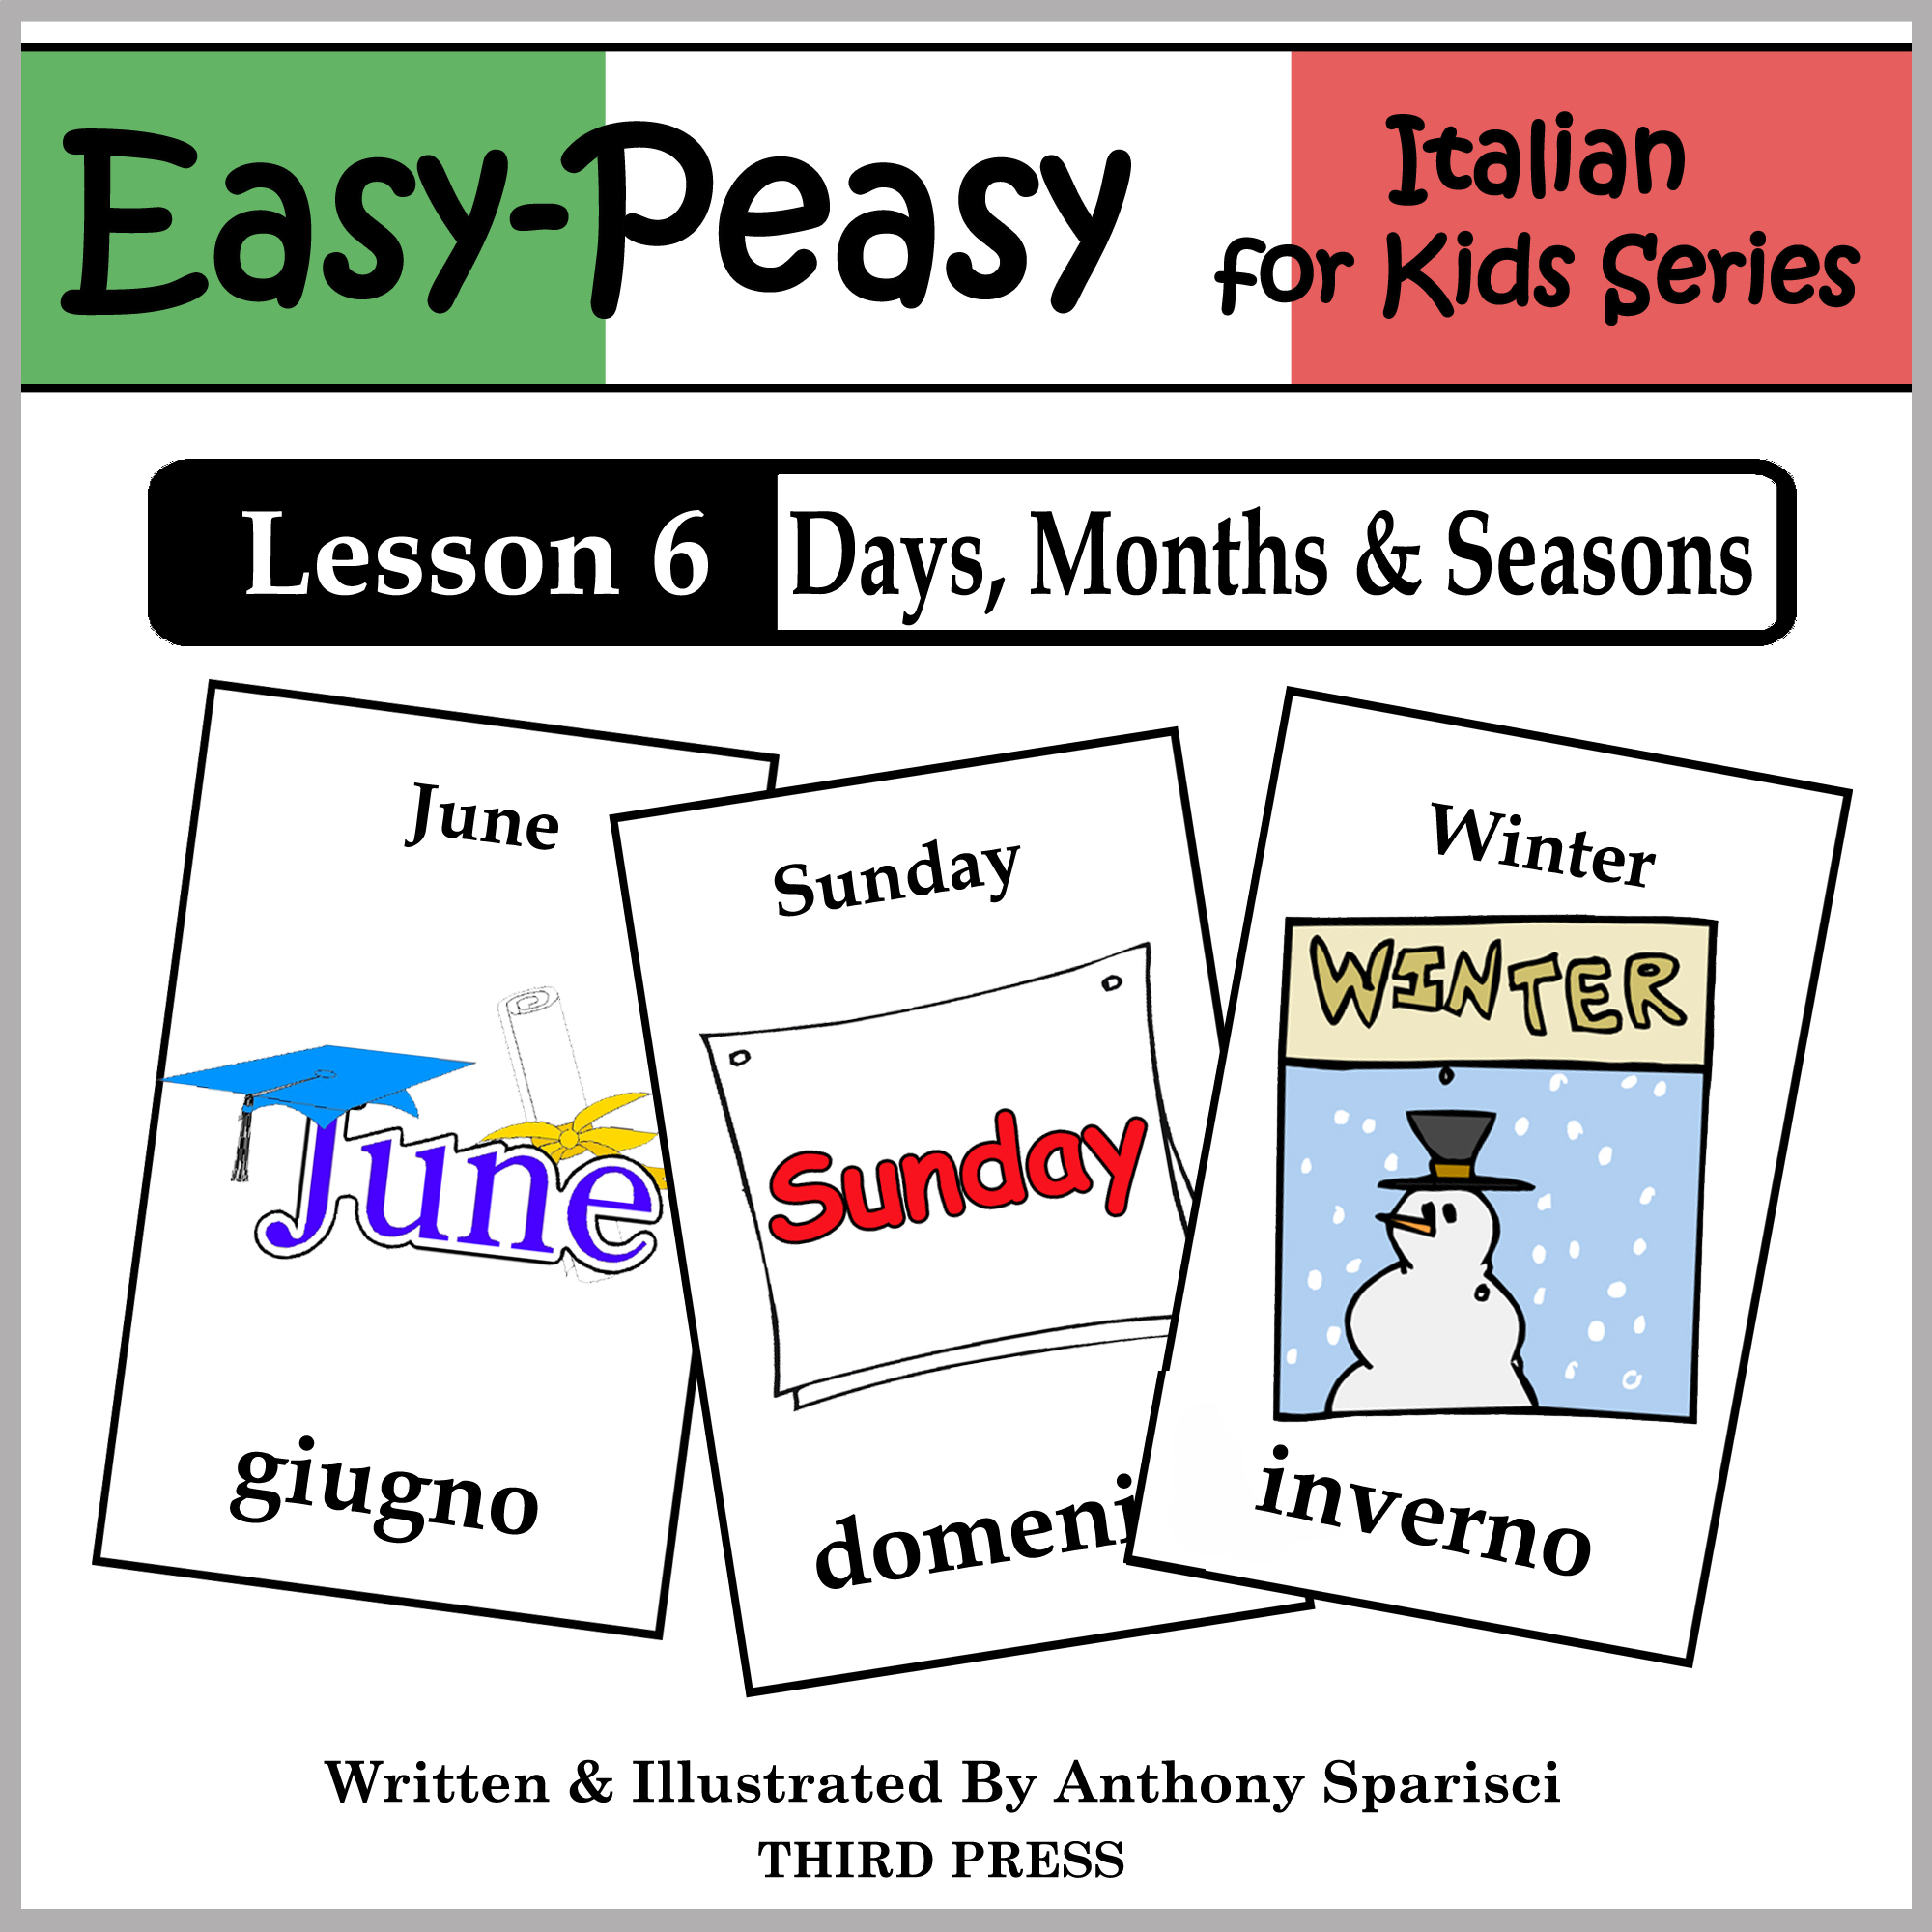 Italian Lesson 6: Months, Days & Seasons